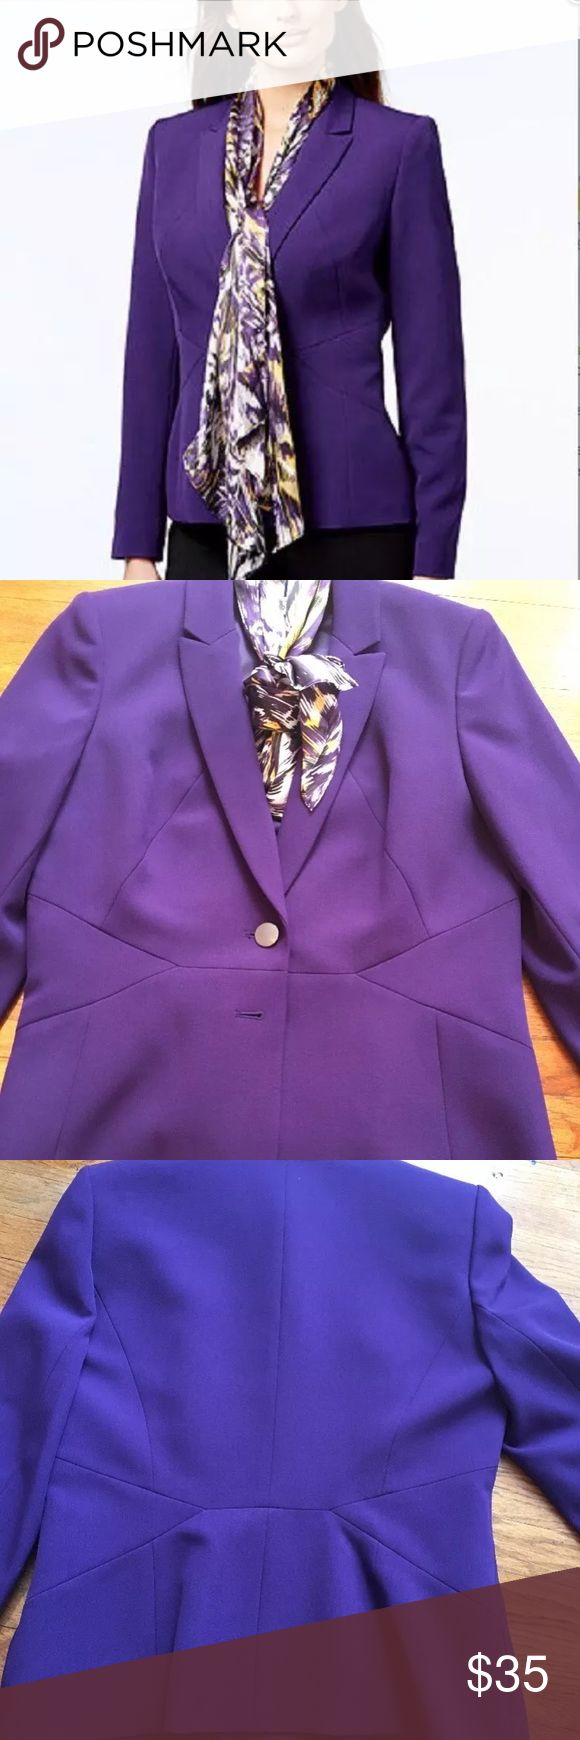 Kasper Purple Blazer Career Suit Petite Size 10 This Plum/Purple jacket was purchased at Macy's but never worn. It is a great vintage looking piece to brighten up any suit Kasper Jackets & Coats Blazers